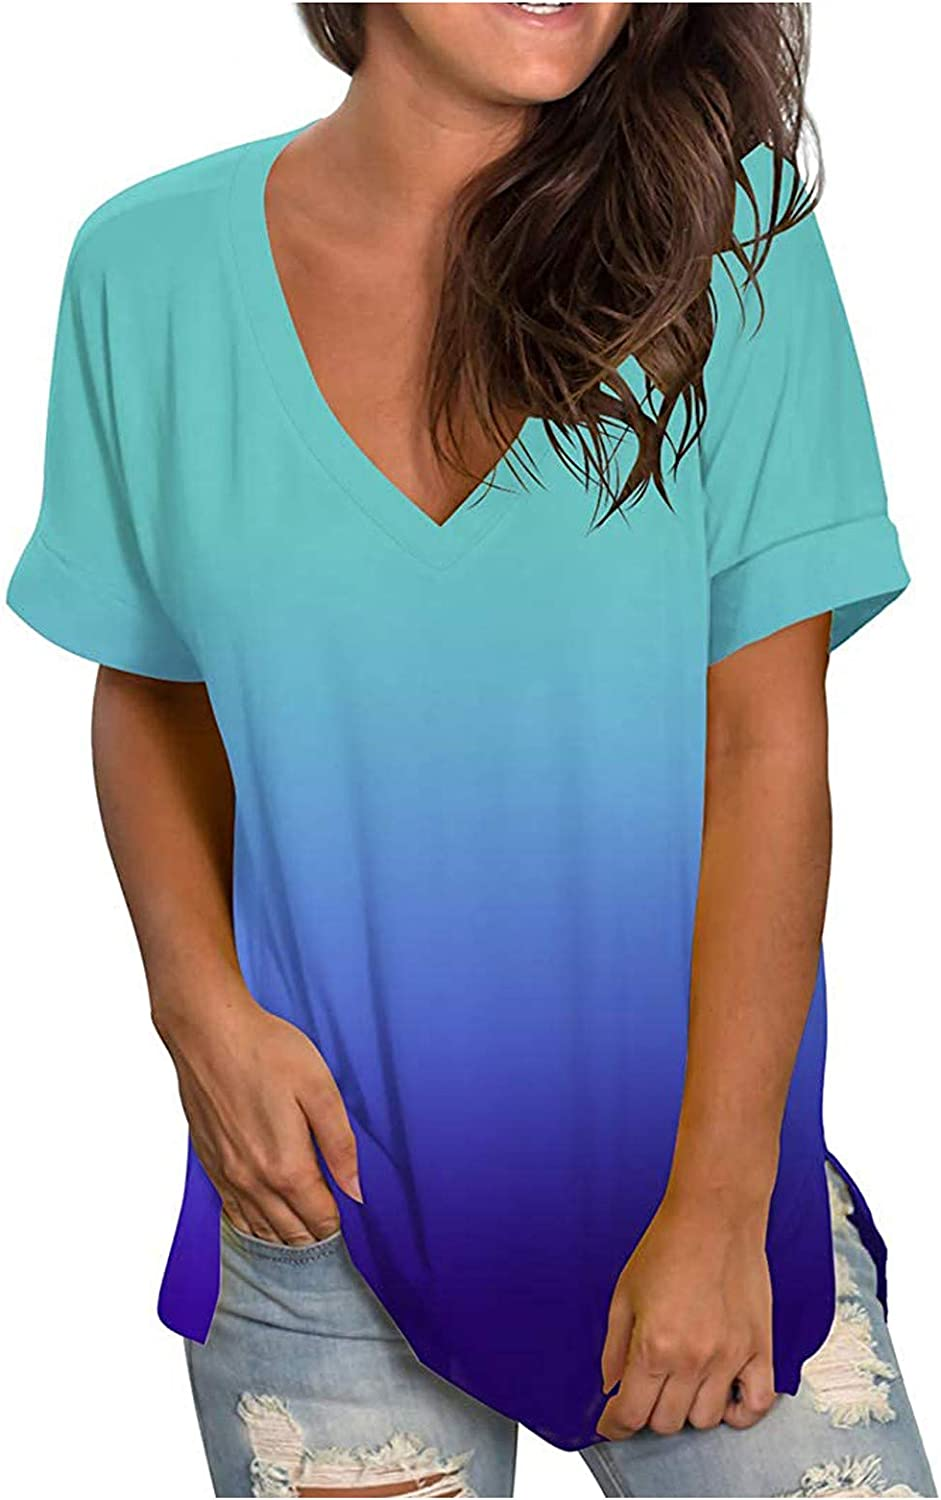 hengfeny Womens Tops V Neck T Shirts Roll Up Short Sleeve Loose Solid Color Tunic Plus Size Casual Basic Tees Tops